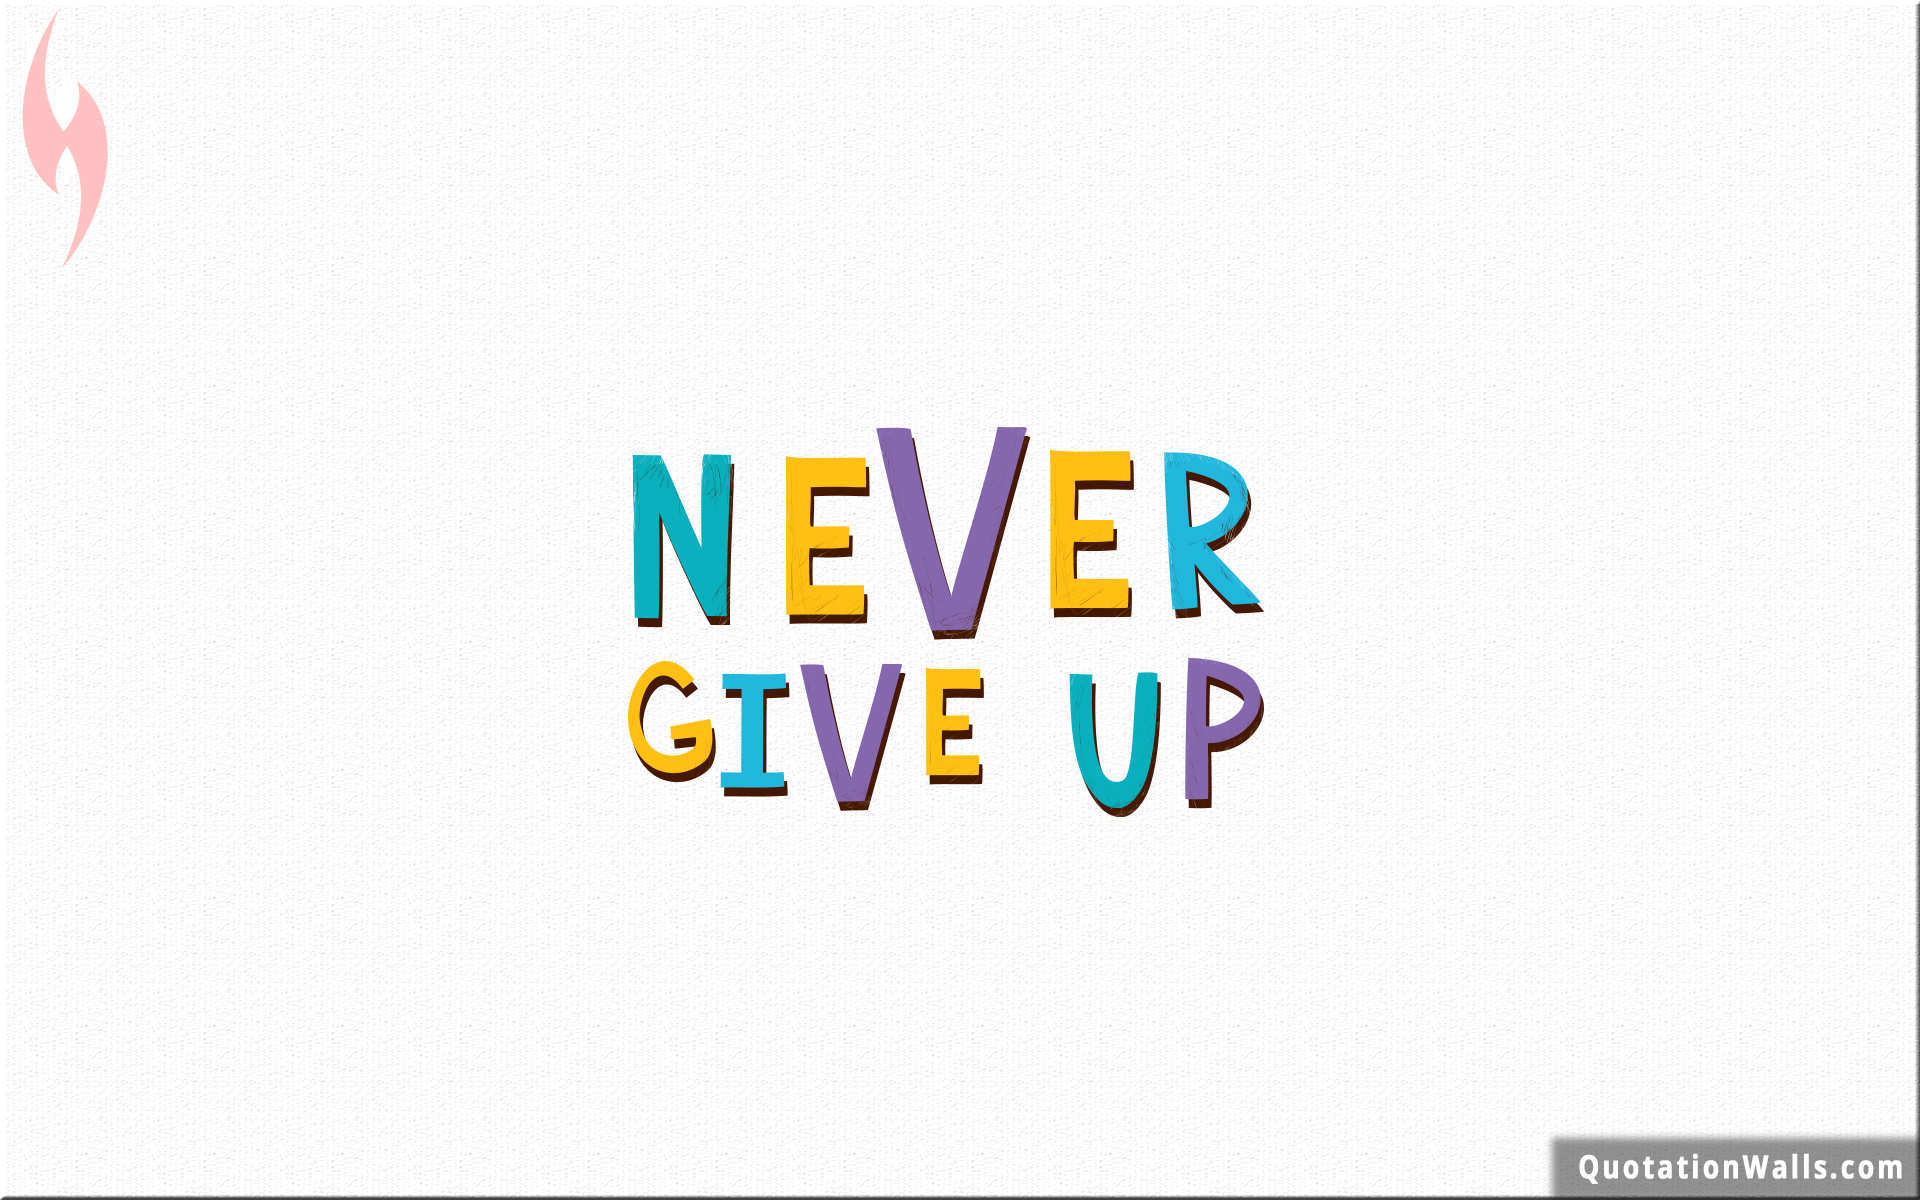 Never Give Up Wallpapers - Wallpaper Cave